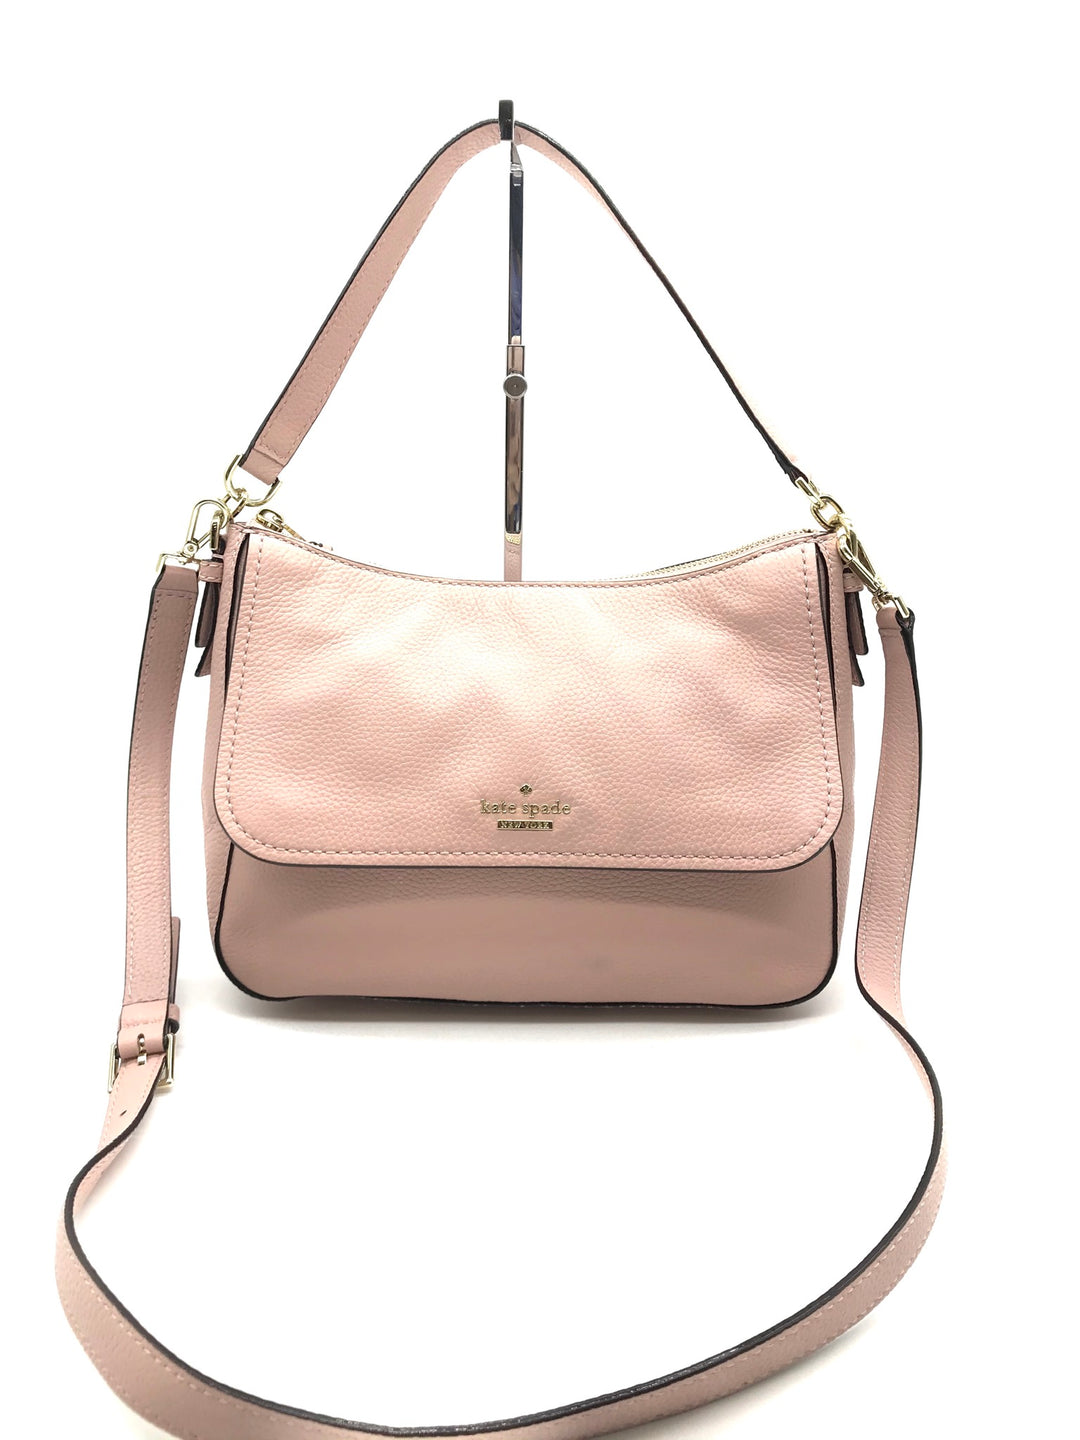 Primary Photo - BRAND: KATE SPADE <BR>STYLE: HANDBAG DESIGNER <BR>COLOR: LIGHT PINK <BR>SIZE: MEDIUM <BR>SKU: 262-26275-66916<BR>IN EXCELLENT SHAPE AND CONDITION